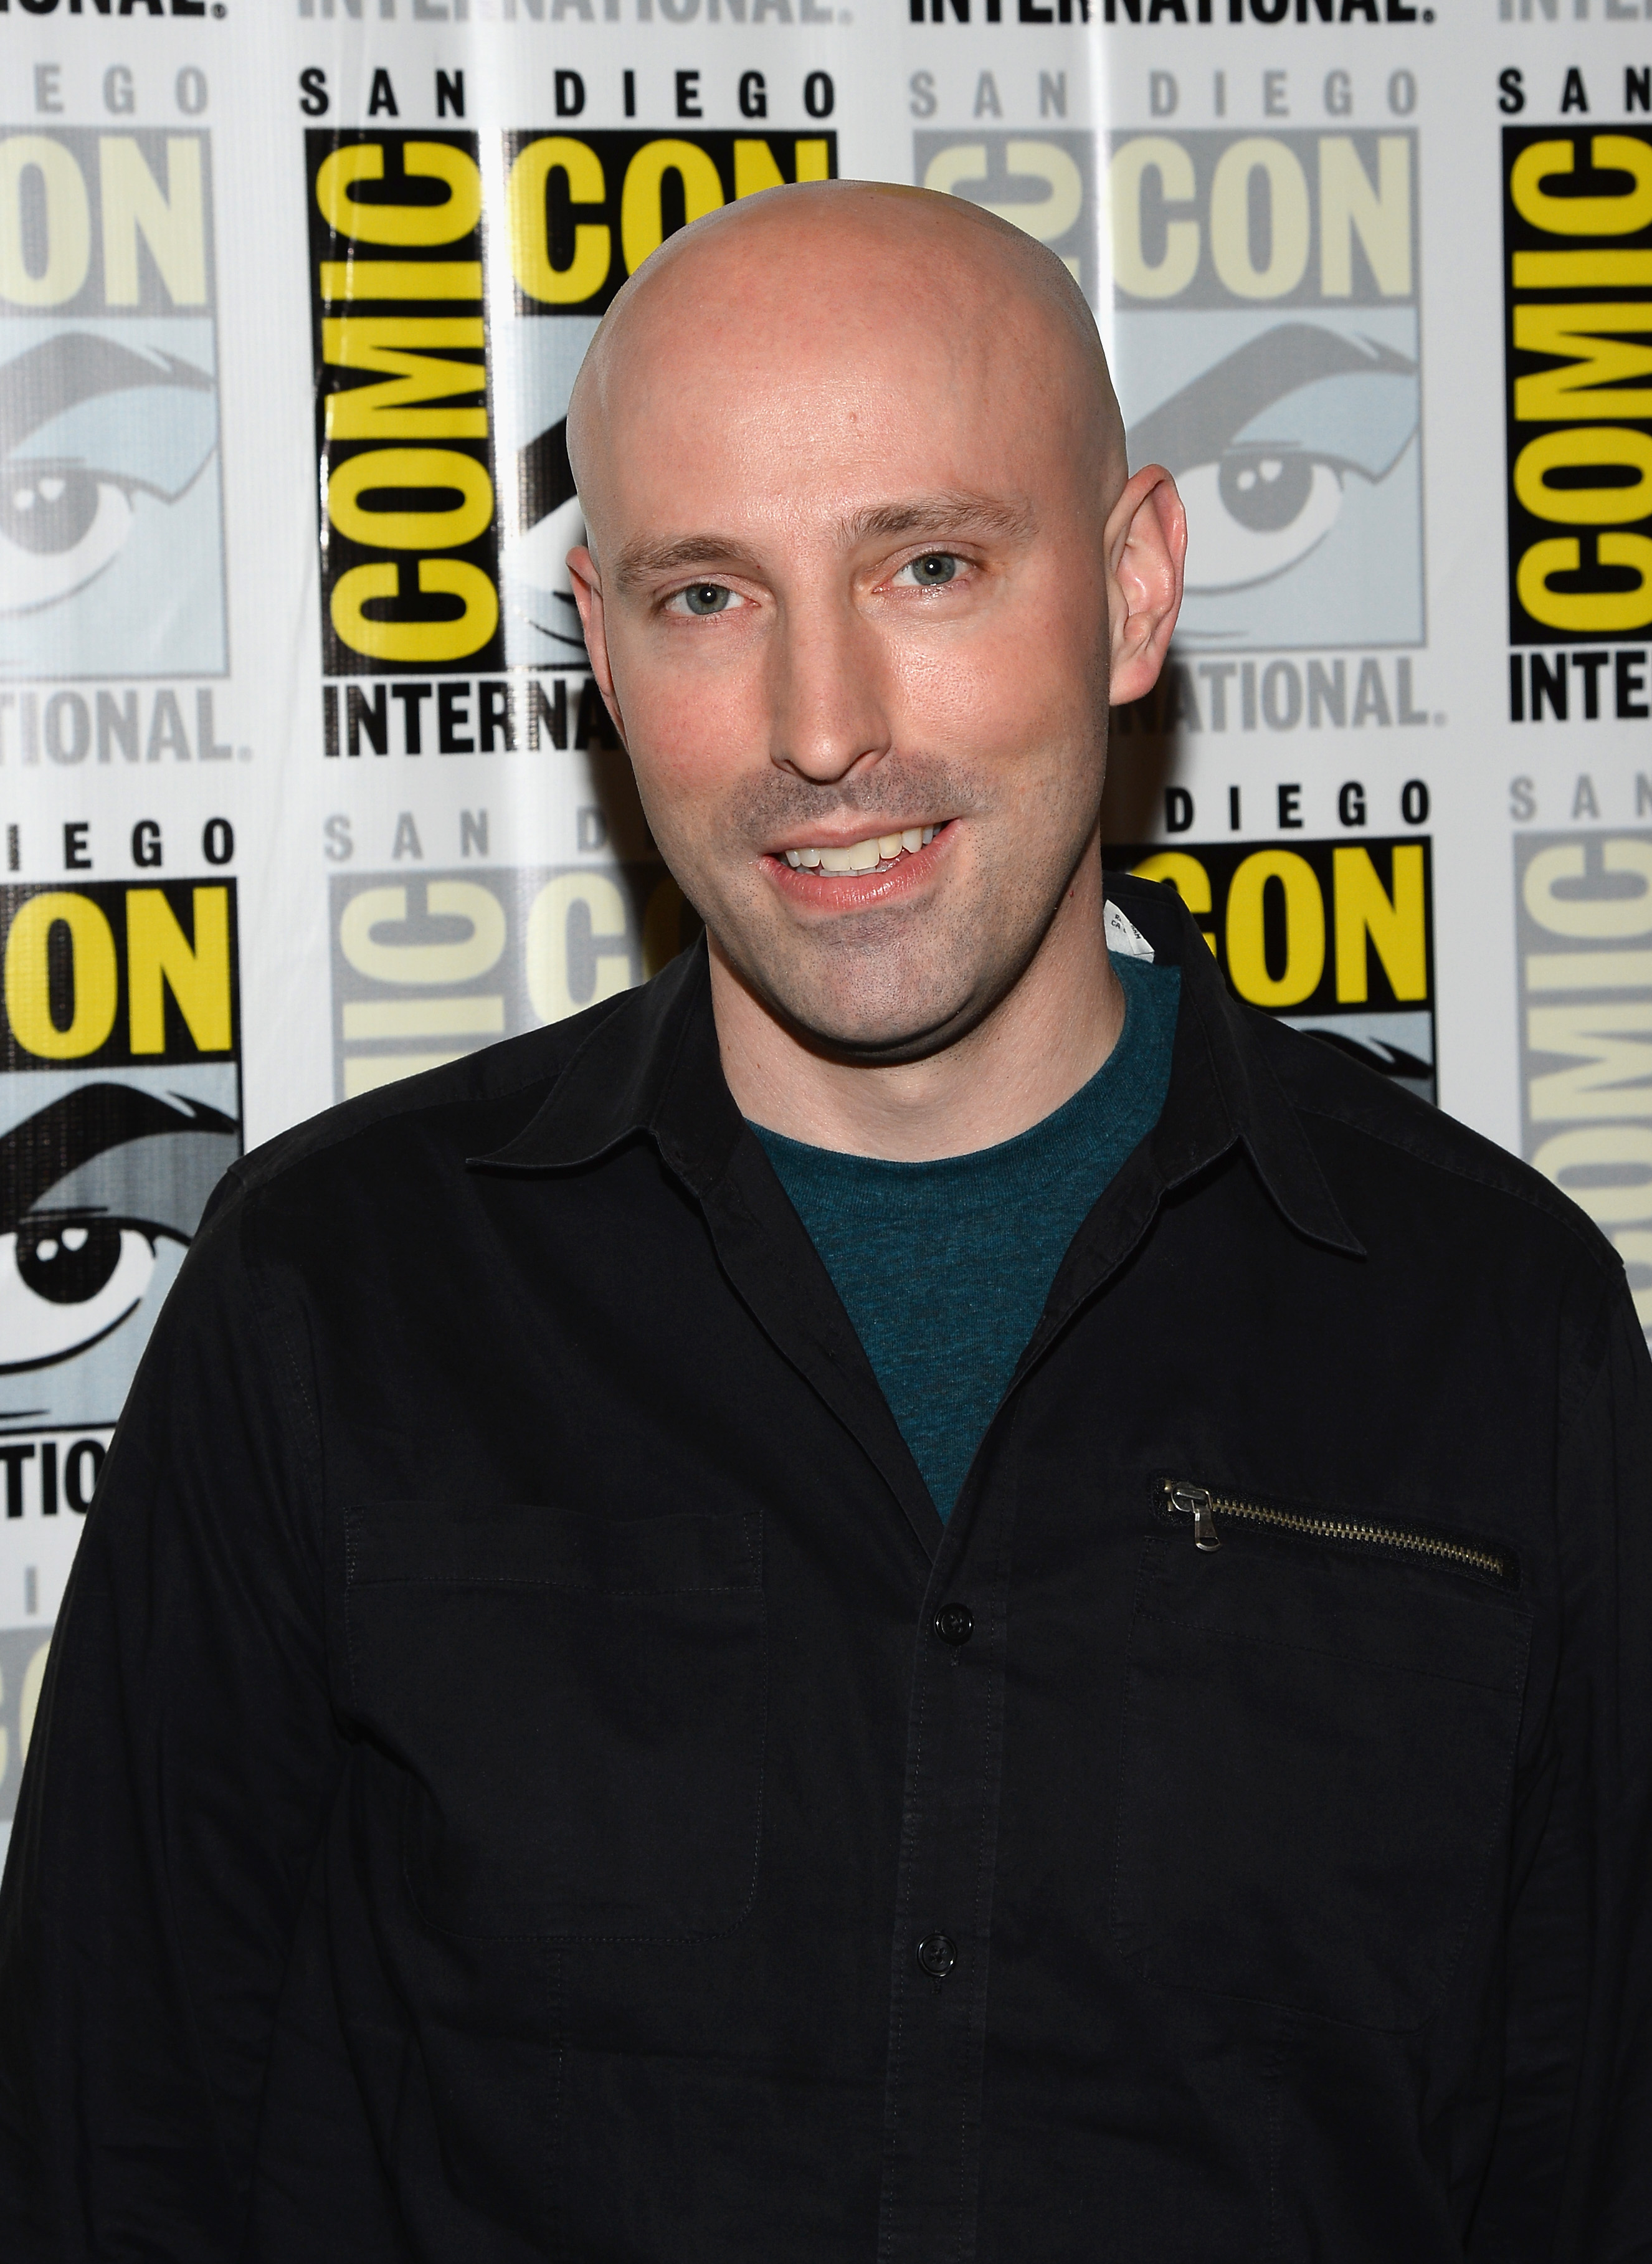 Brian K. Vaughan attends Comic-Con on July 20, 2013 in San Diego, Calif.